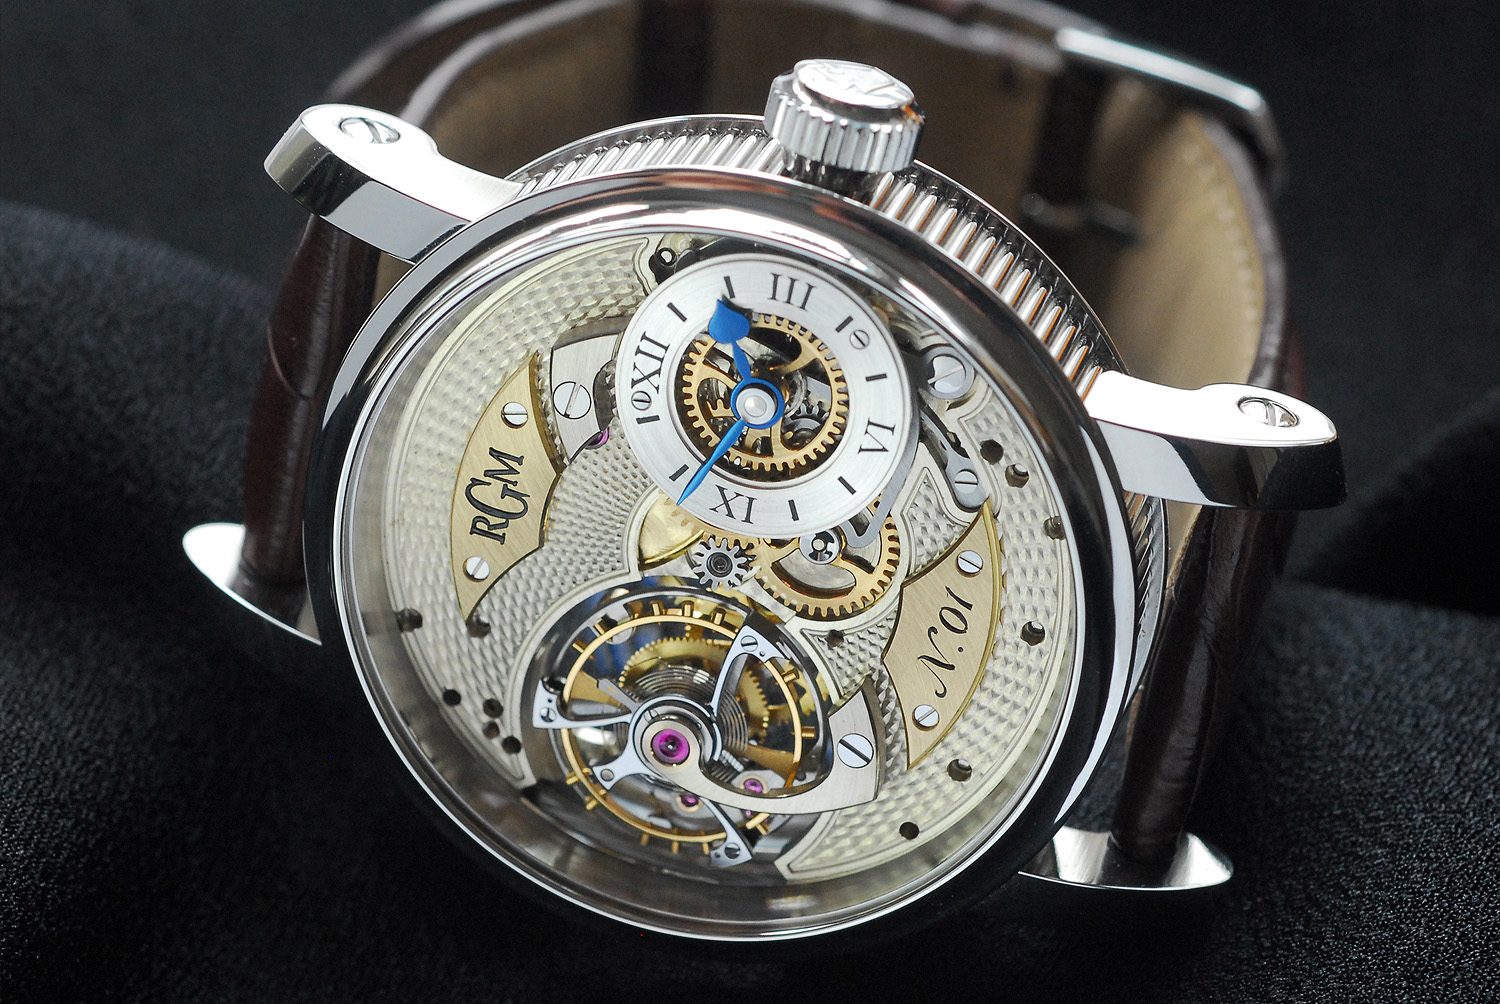 PENNSYLVANIA TOURBILLON    Stainless Steel -$95,000.00  Contact RGM for Pricing in Gold or Platinum.